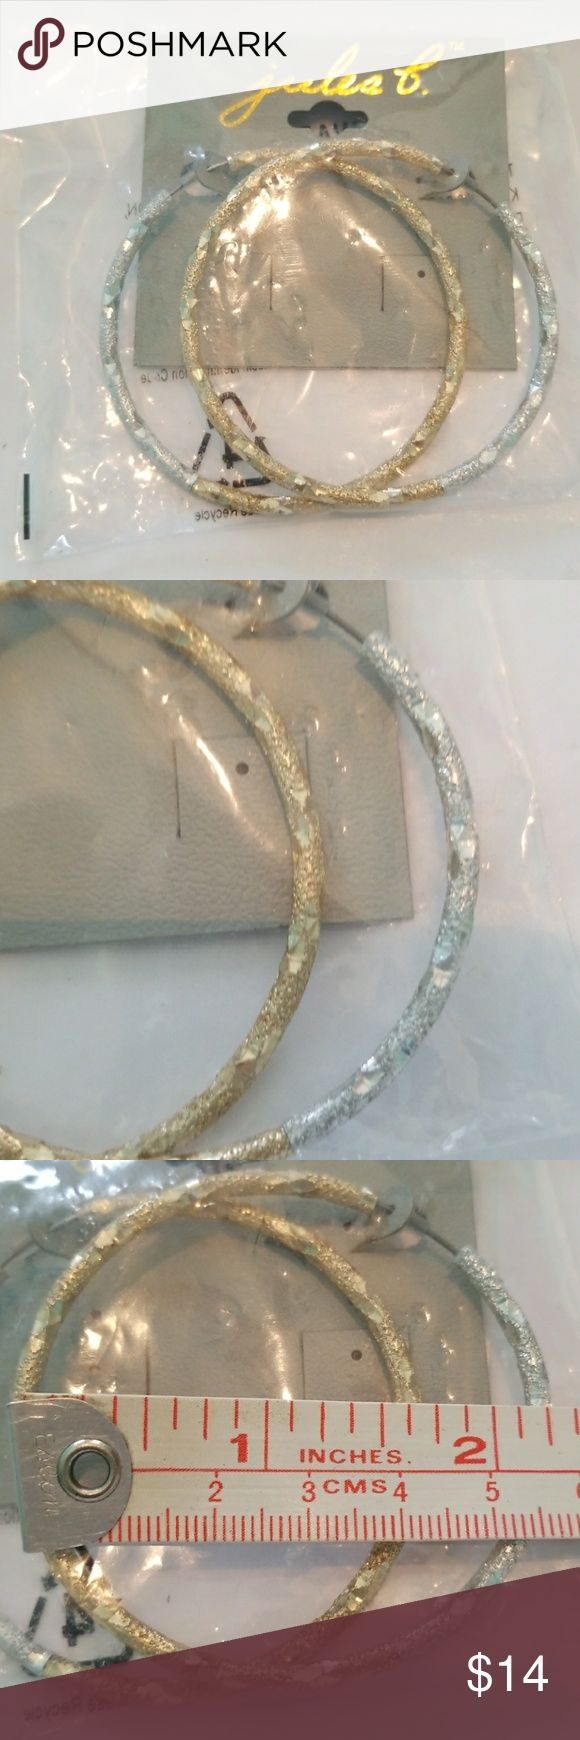 NWT Jules B Two Tone Hoop Earrings Really good quality. Two tone in gold and silver, with great pattern/details. Never worn, still in its original packaging from when I purchased online.Measurements shown on 3rd pic. jules b. Jewelry Earrings